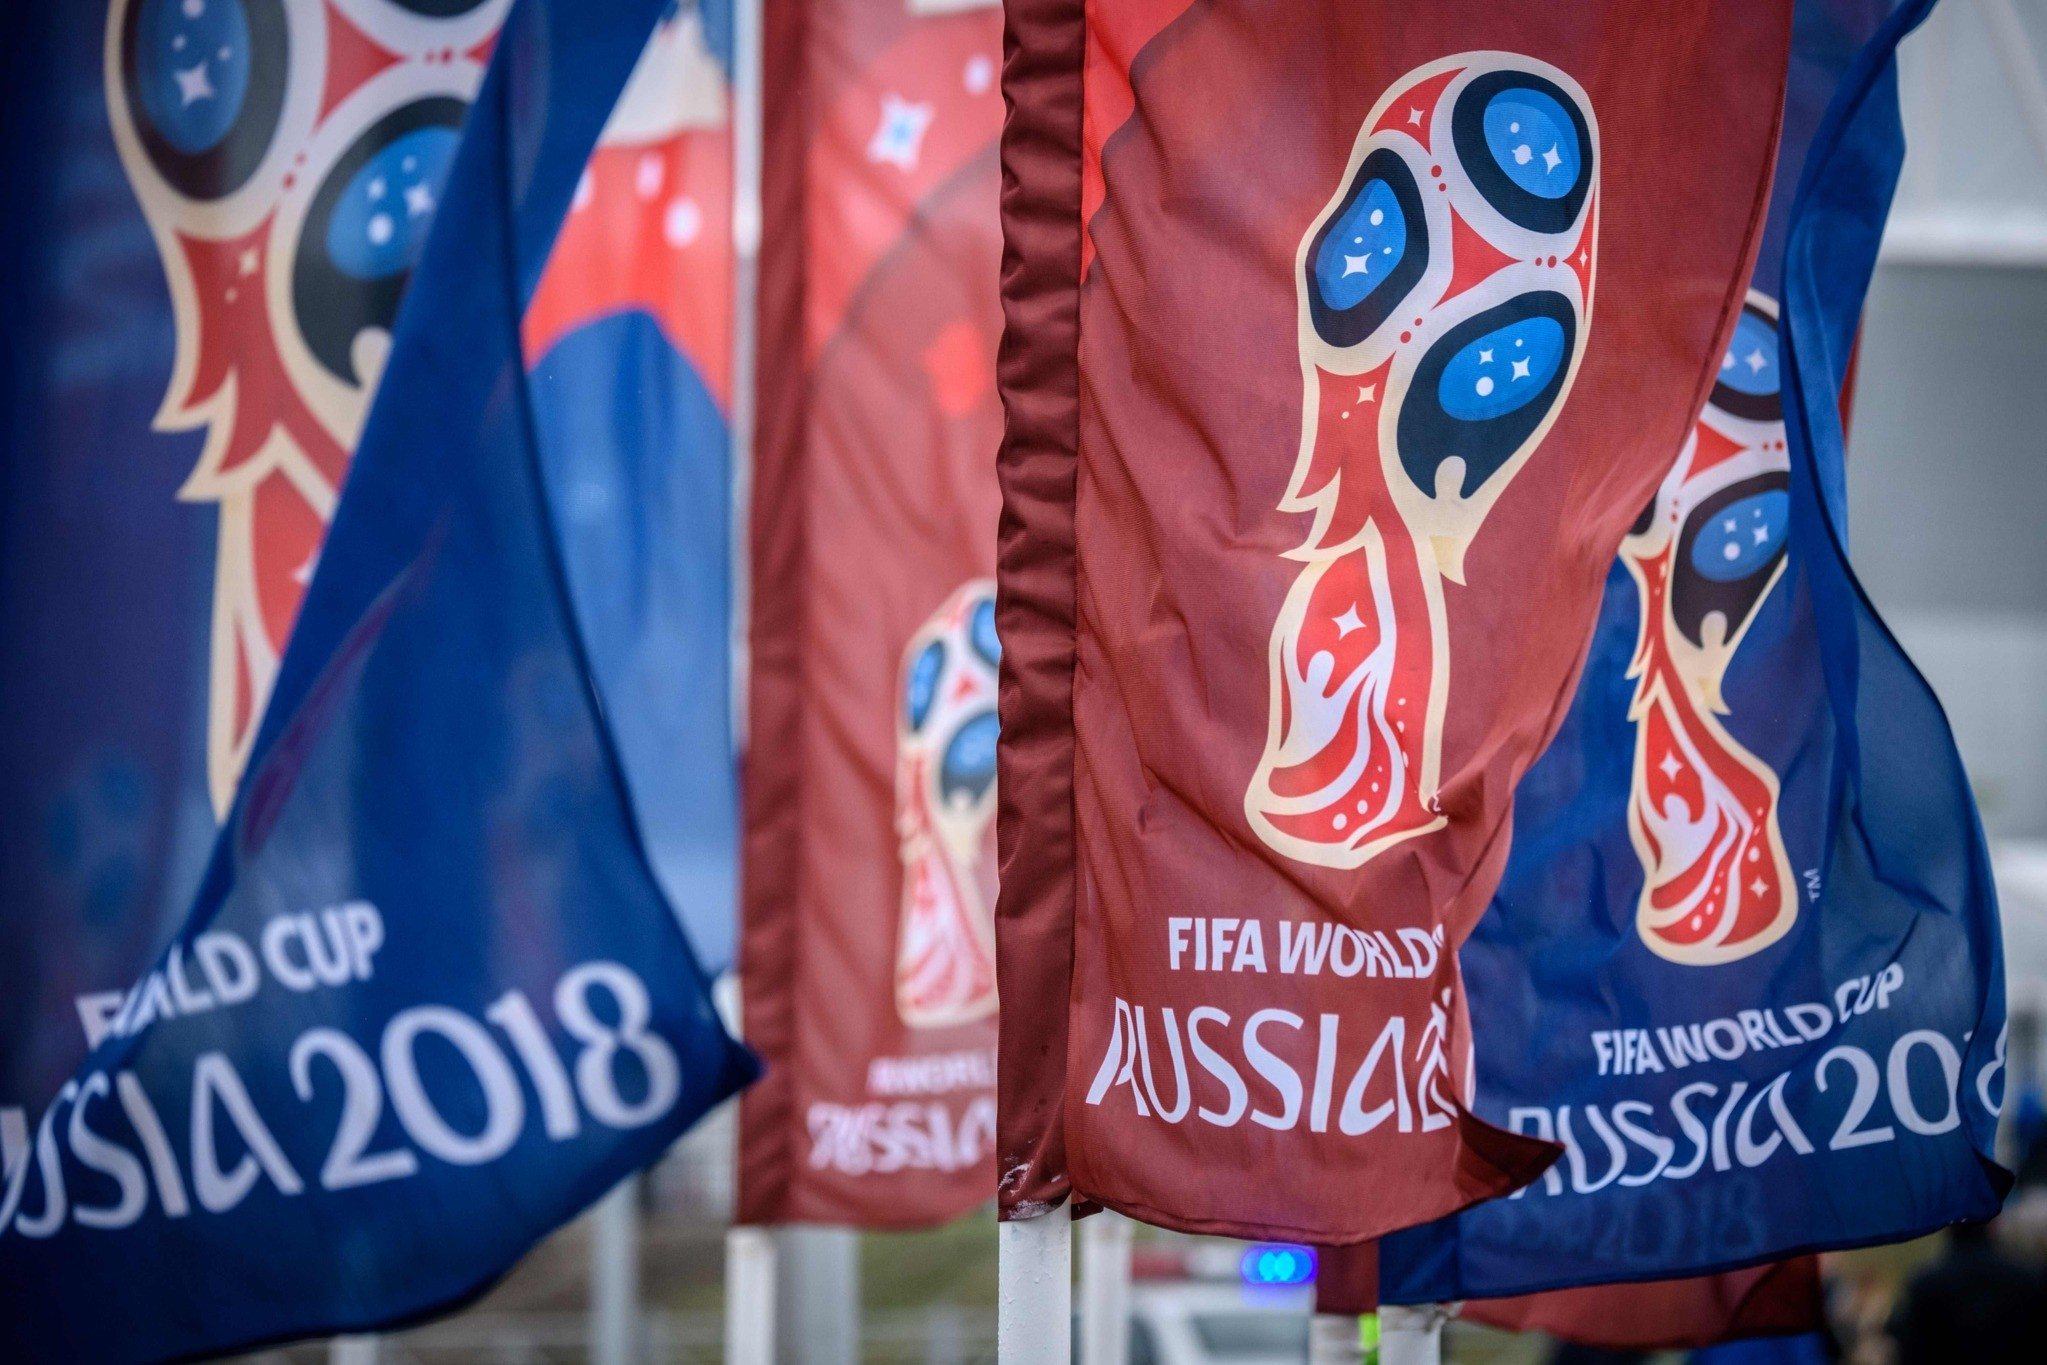 Flags featuring the logo of the FIFA World Cup 2018 are seen outside Rostov Arena in the southern Russian city of Rostov-on-Don, May 13.